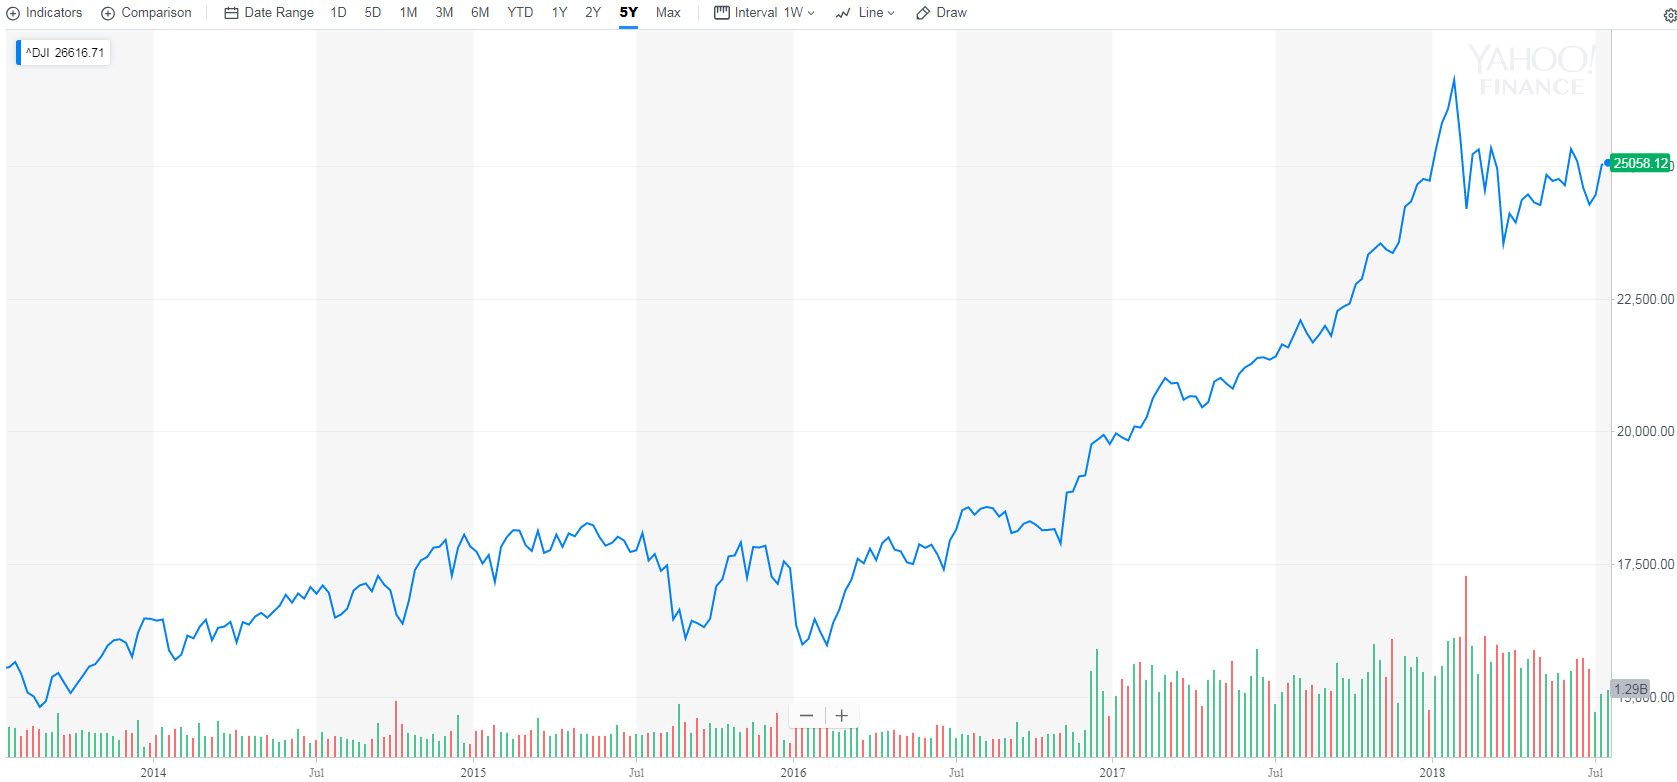 my worst investment decision to date - S&P 500